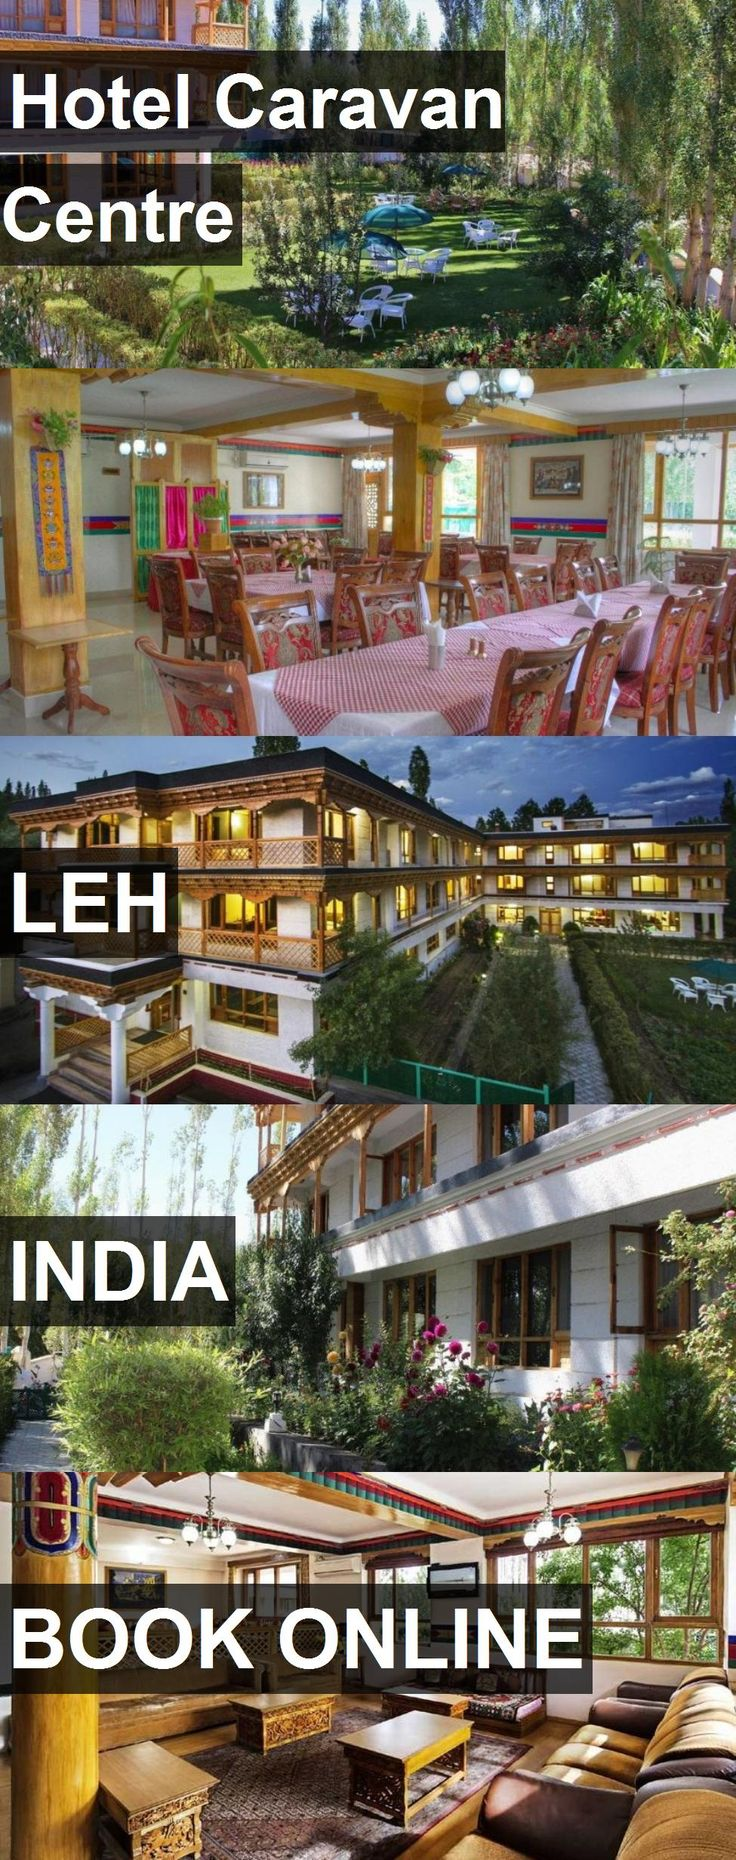 Hotel Caravan Centre in Leh, India. For more information, photos, reviews and best prices please follow the link. #India #Leh #travel #vacation #hotel